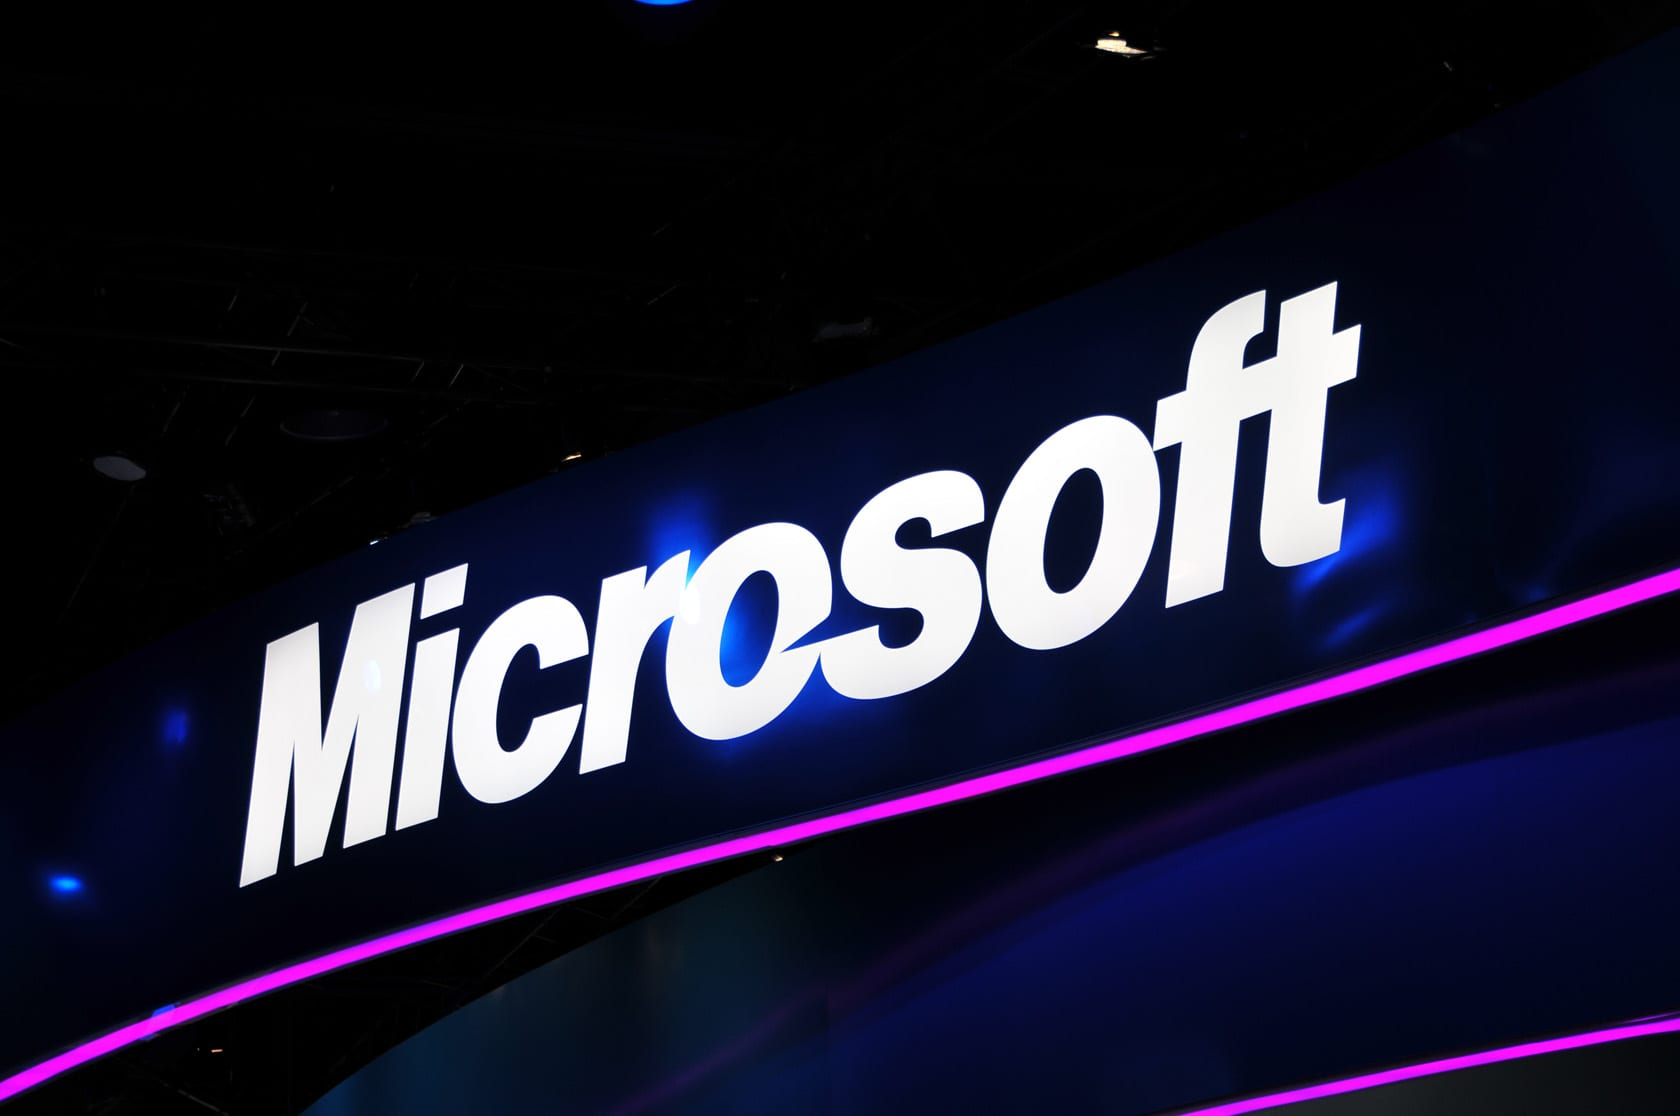 Microsoft Loses $6.2 Billion in 4th Quarter